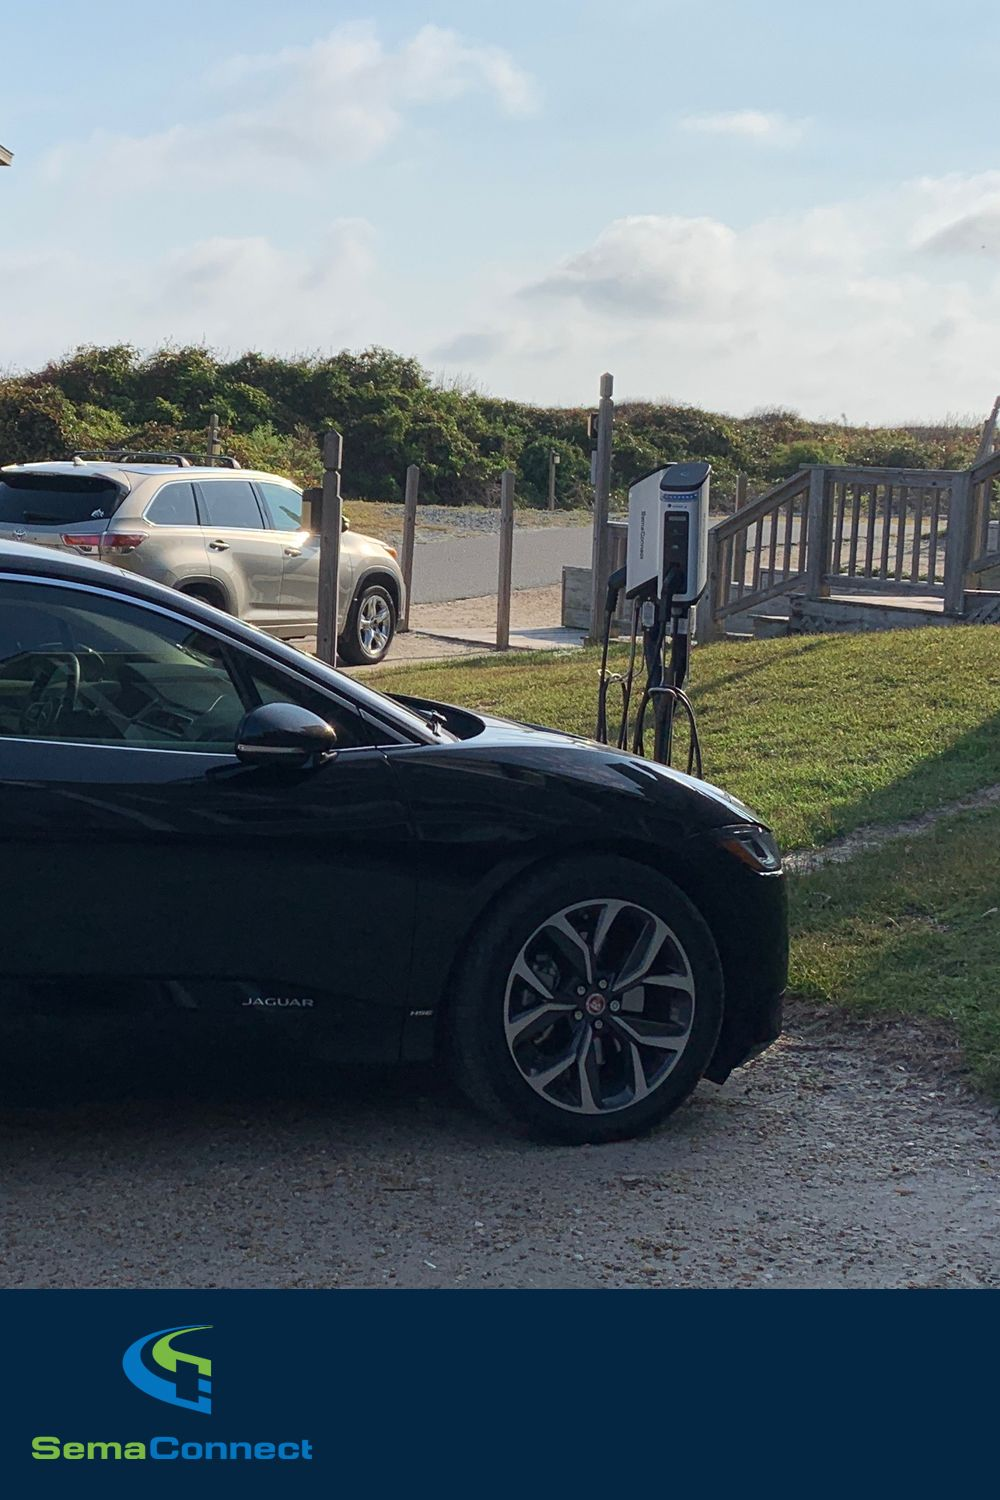 SemaConnect Series 6 EV charging stations at Barrier Island Station in Duck, North Carolina #evcharging #electriccars